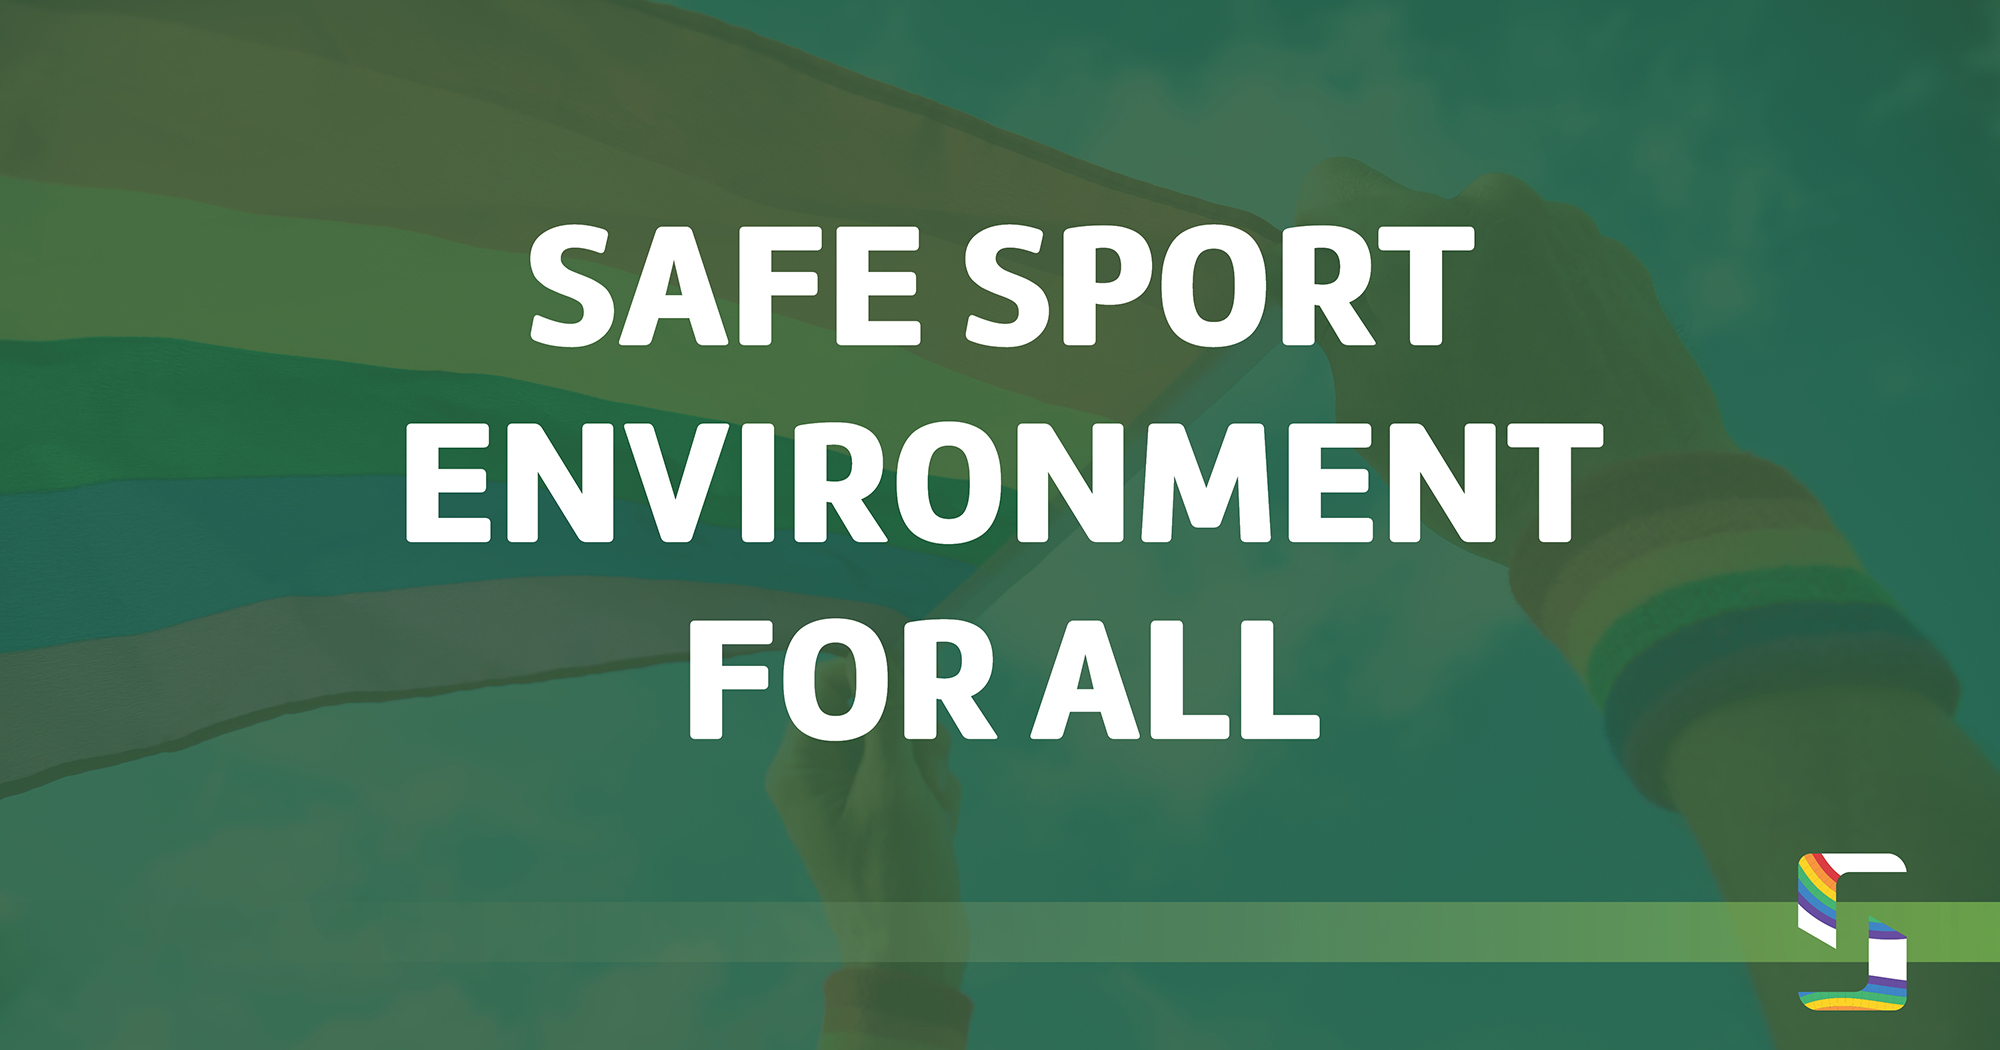 Safe Sport environment for all